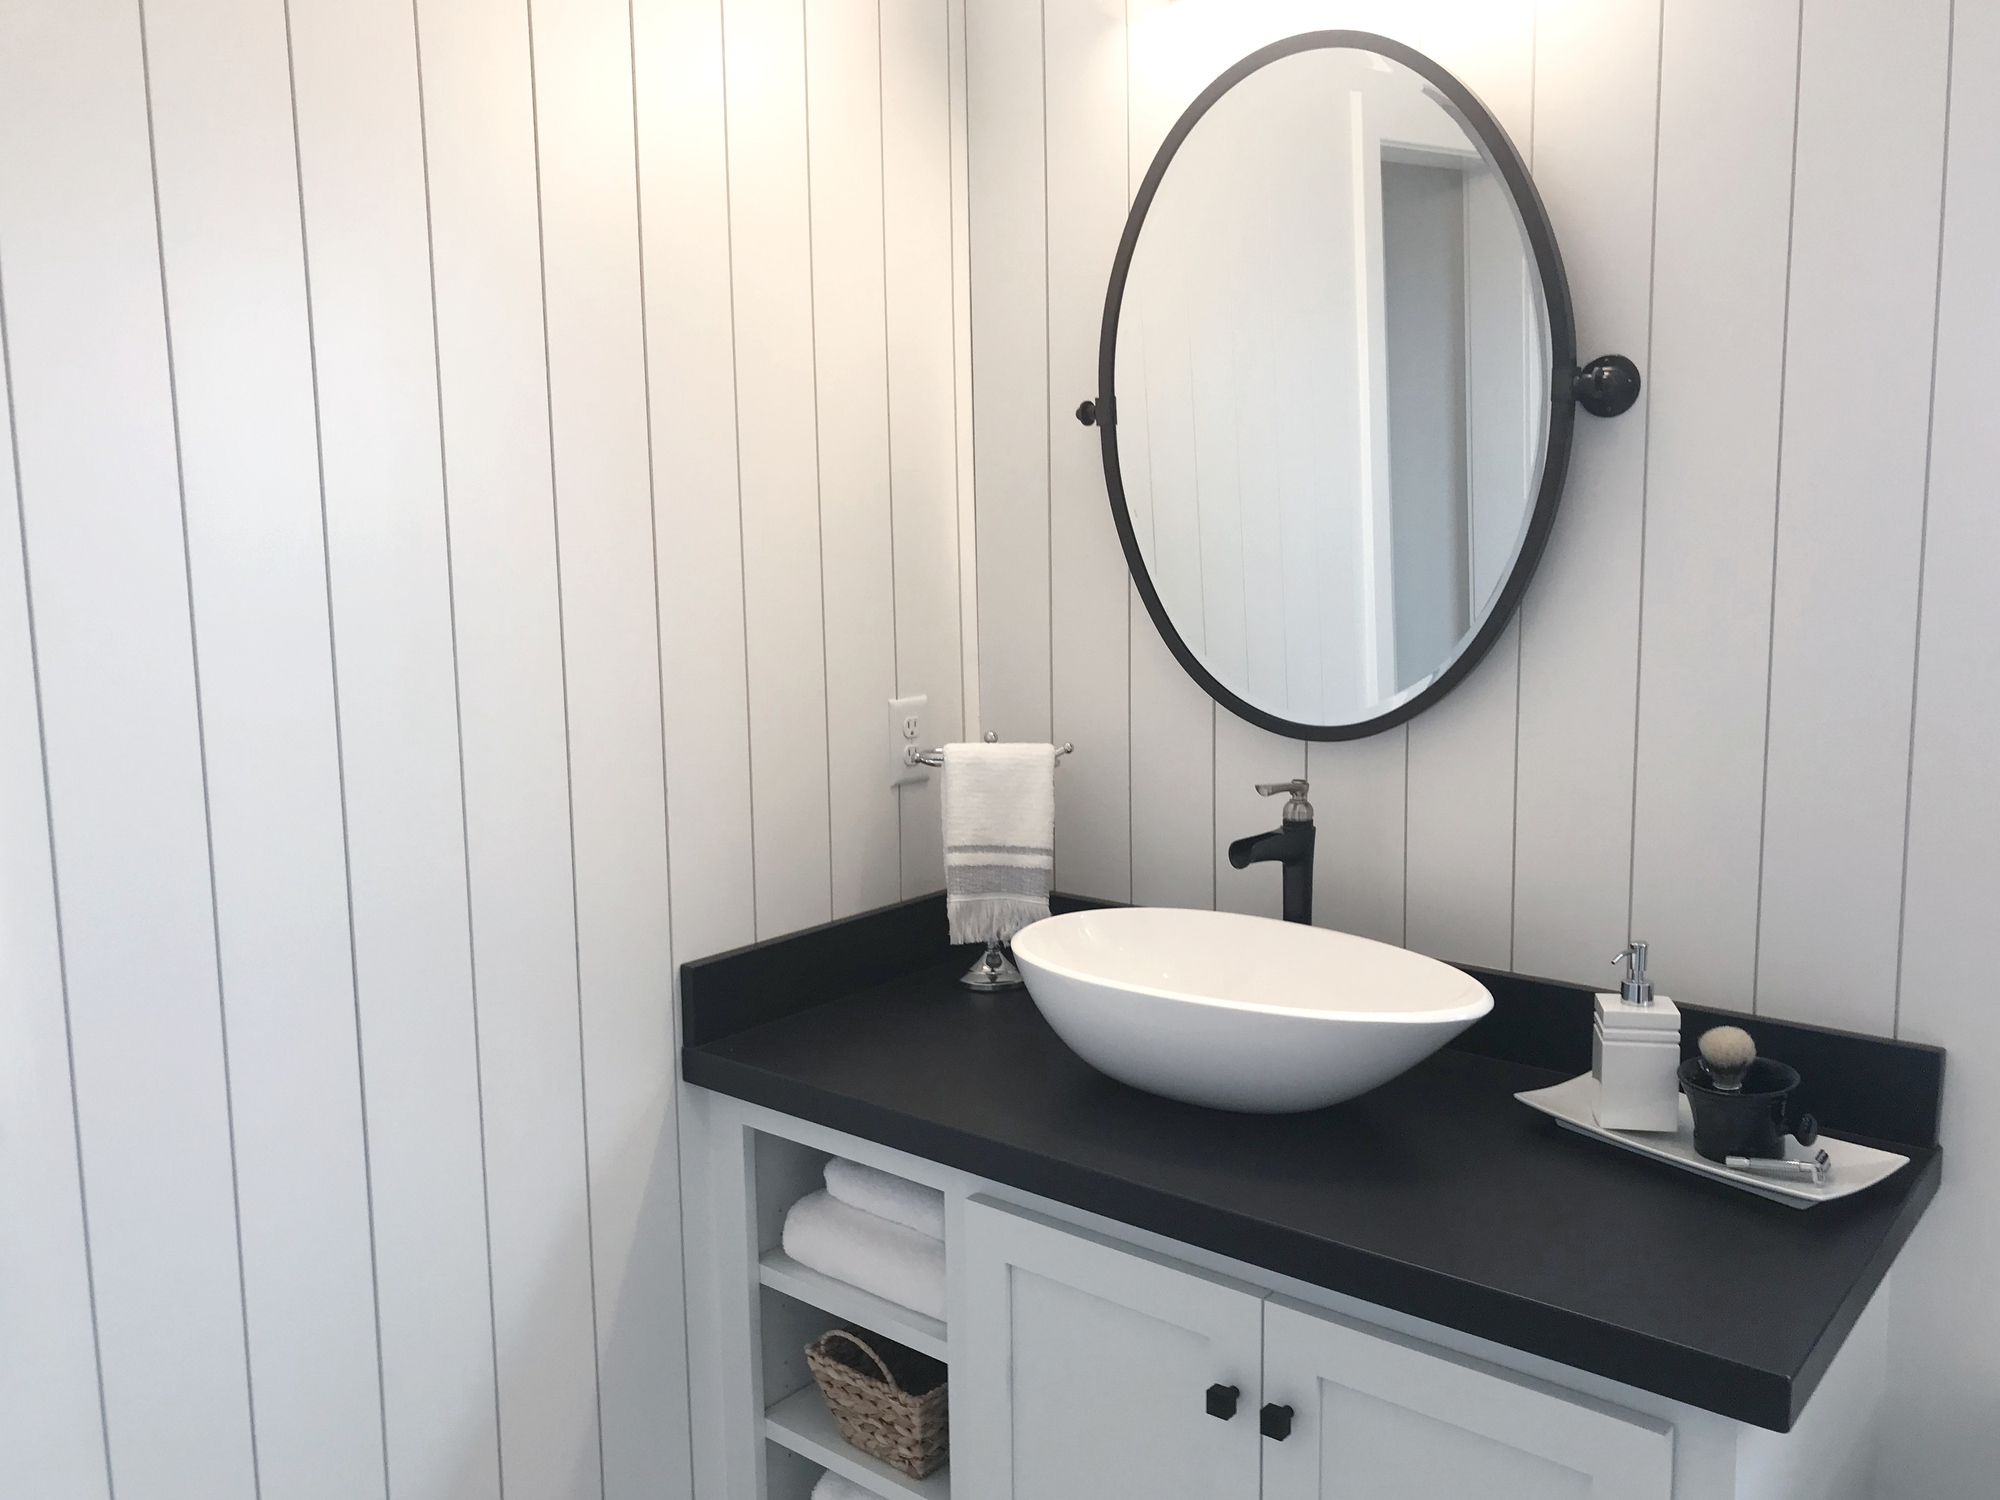 12 Online Sources for Bathroom Vanities: Reviews and Tips